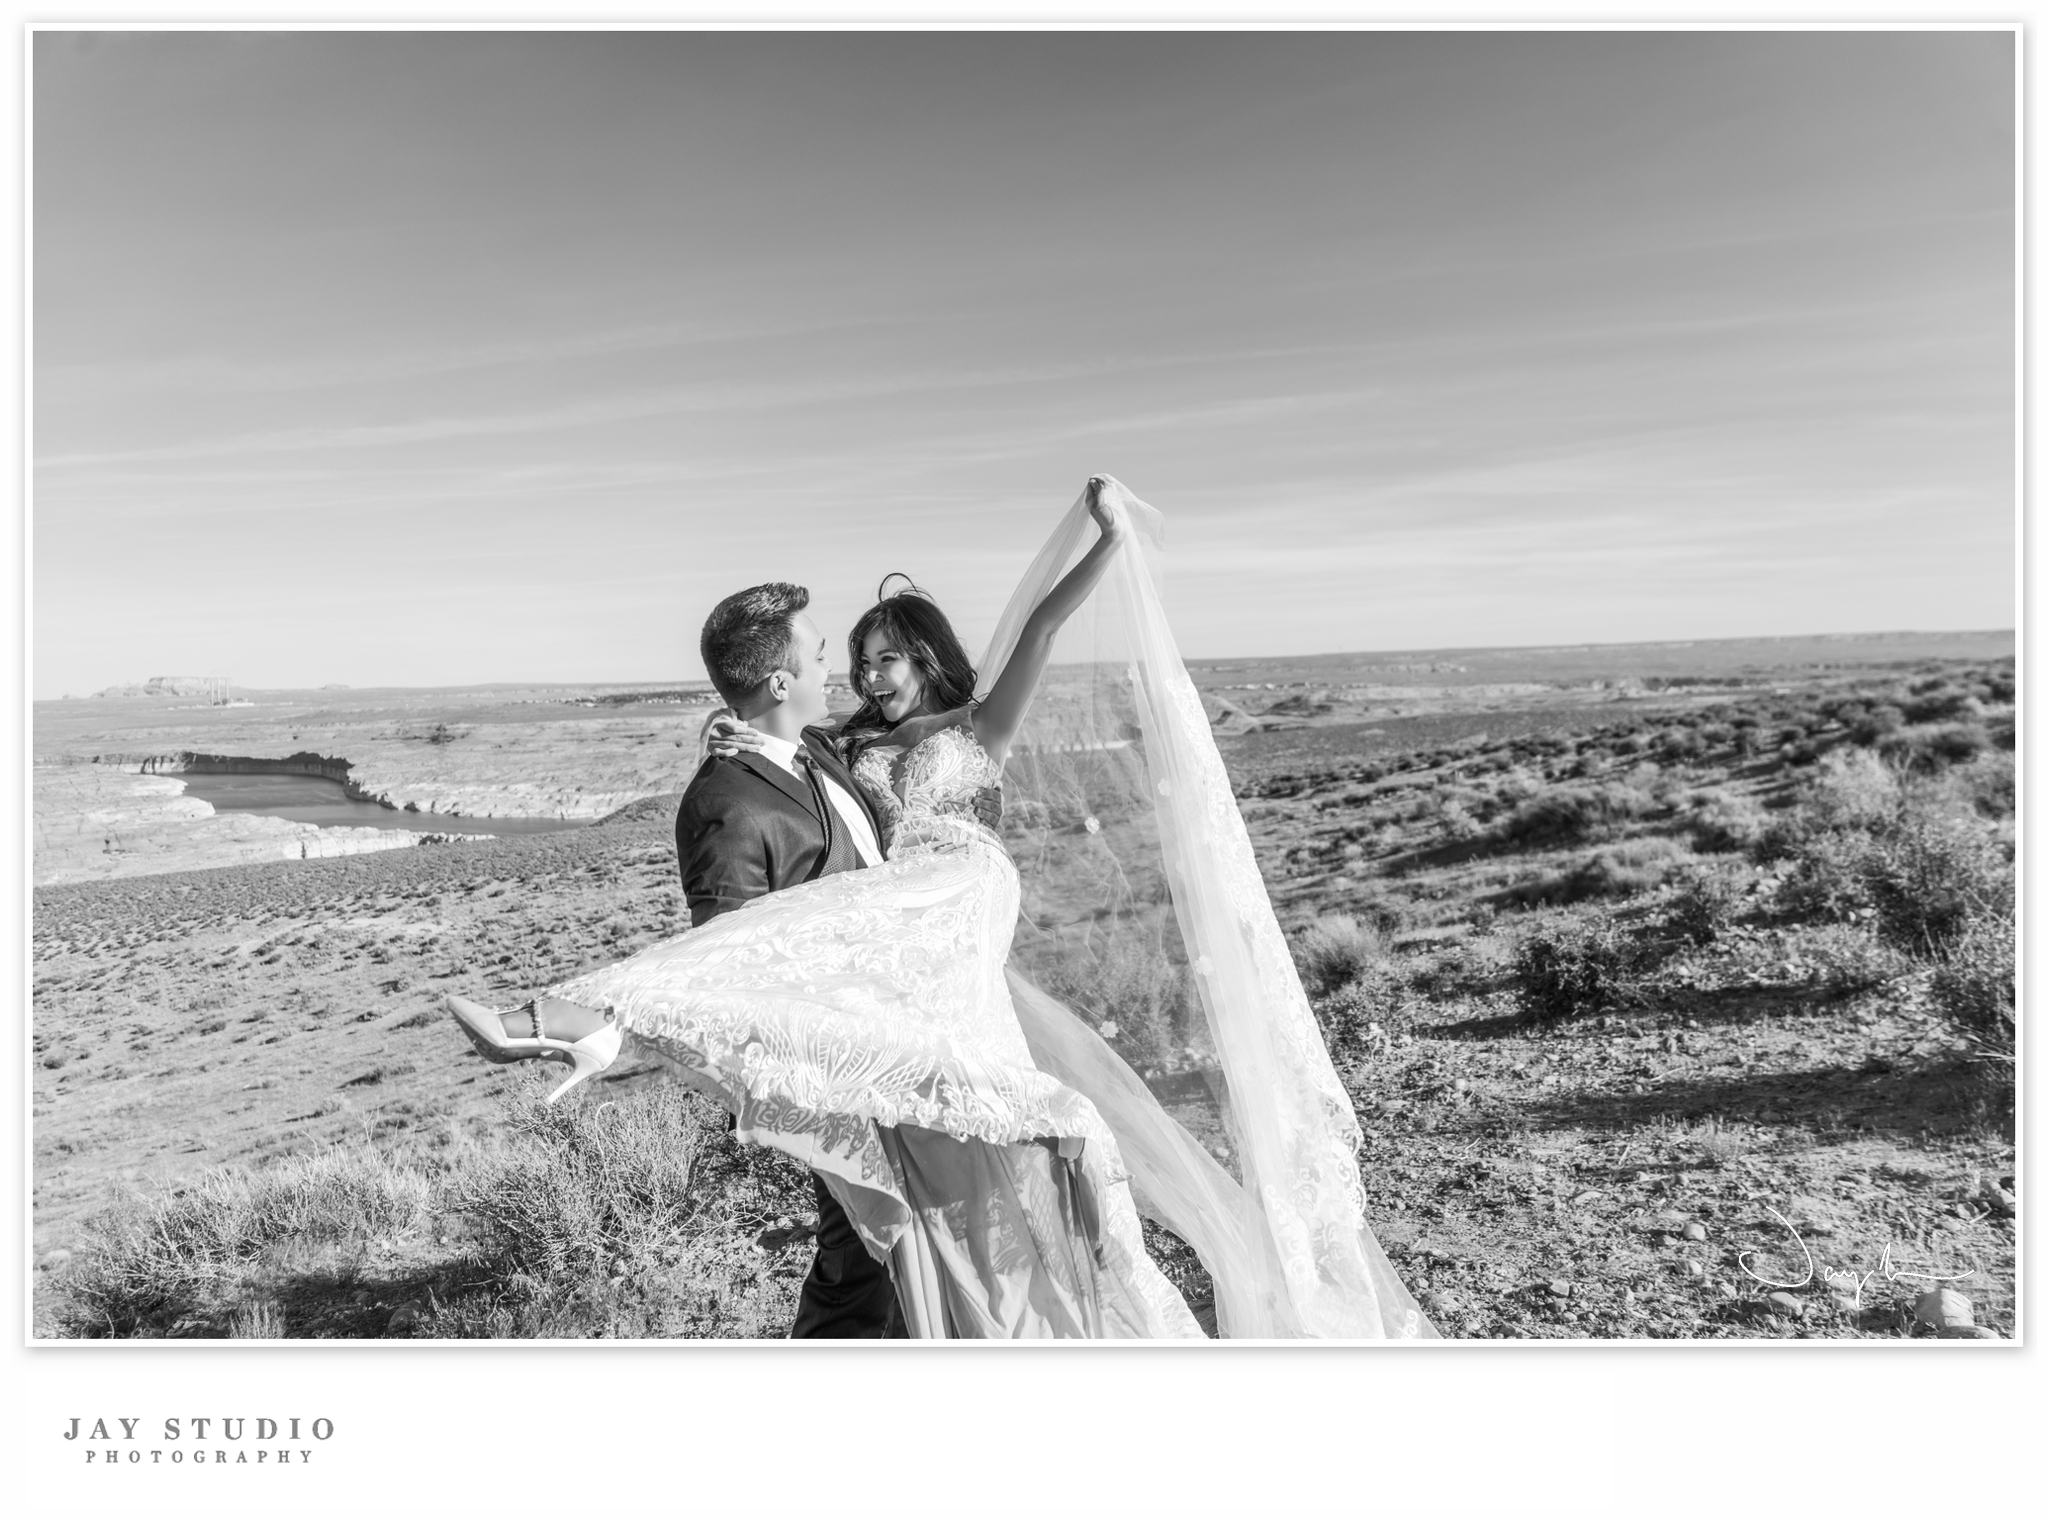 lakepowell prewedding